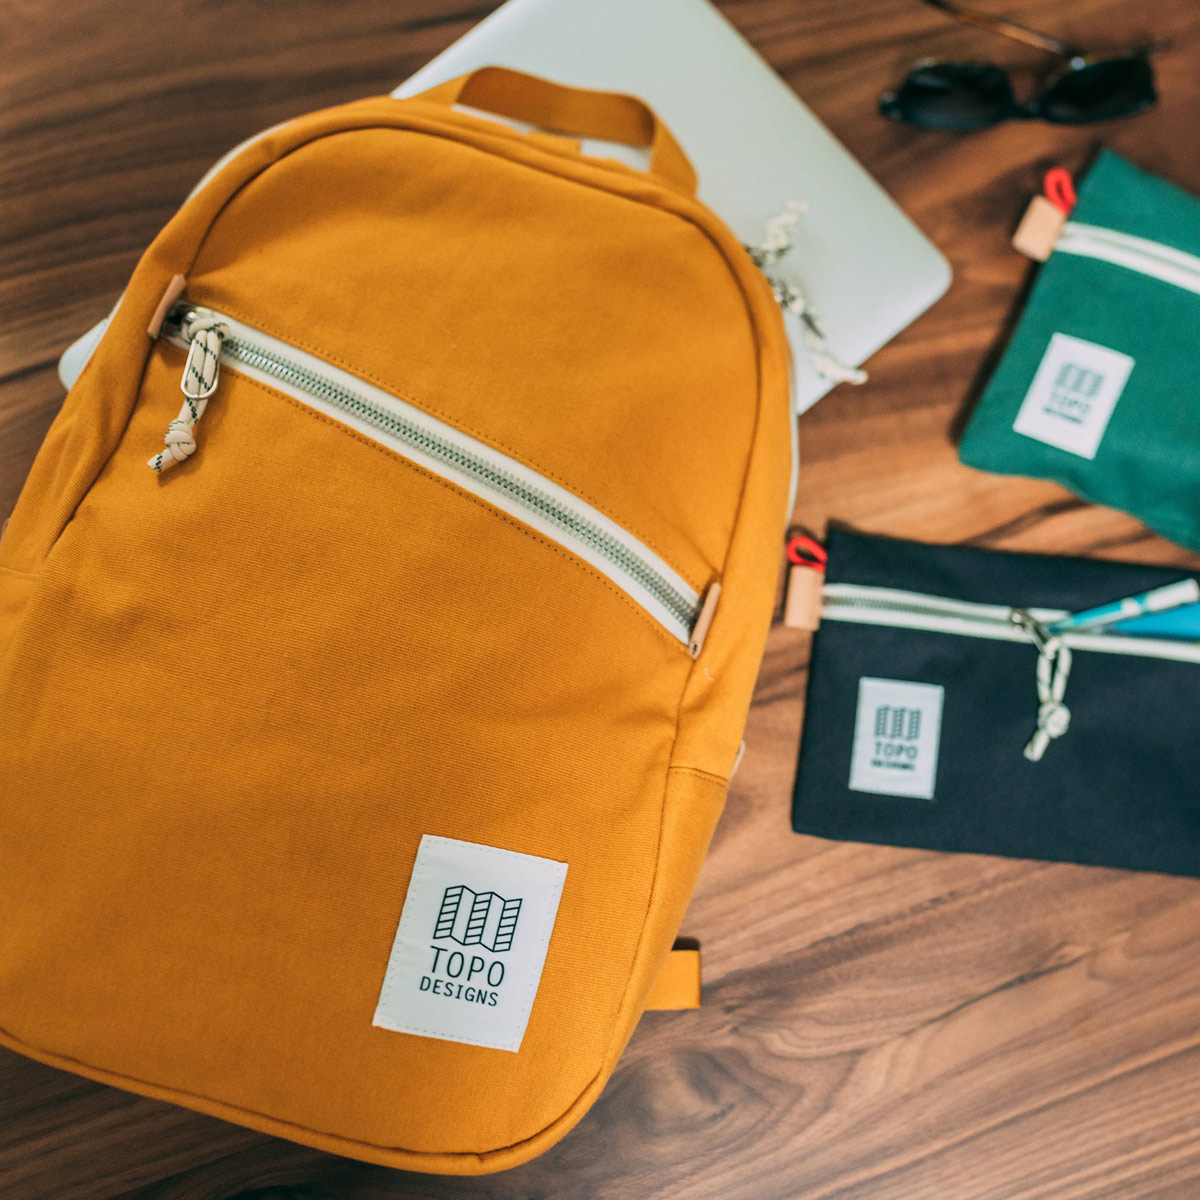 Topo Designs Light Pack Canvas, lightweight carry-all bag, also perfect pack for hiking